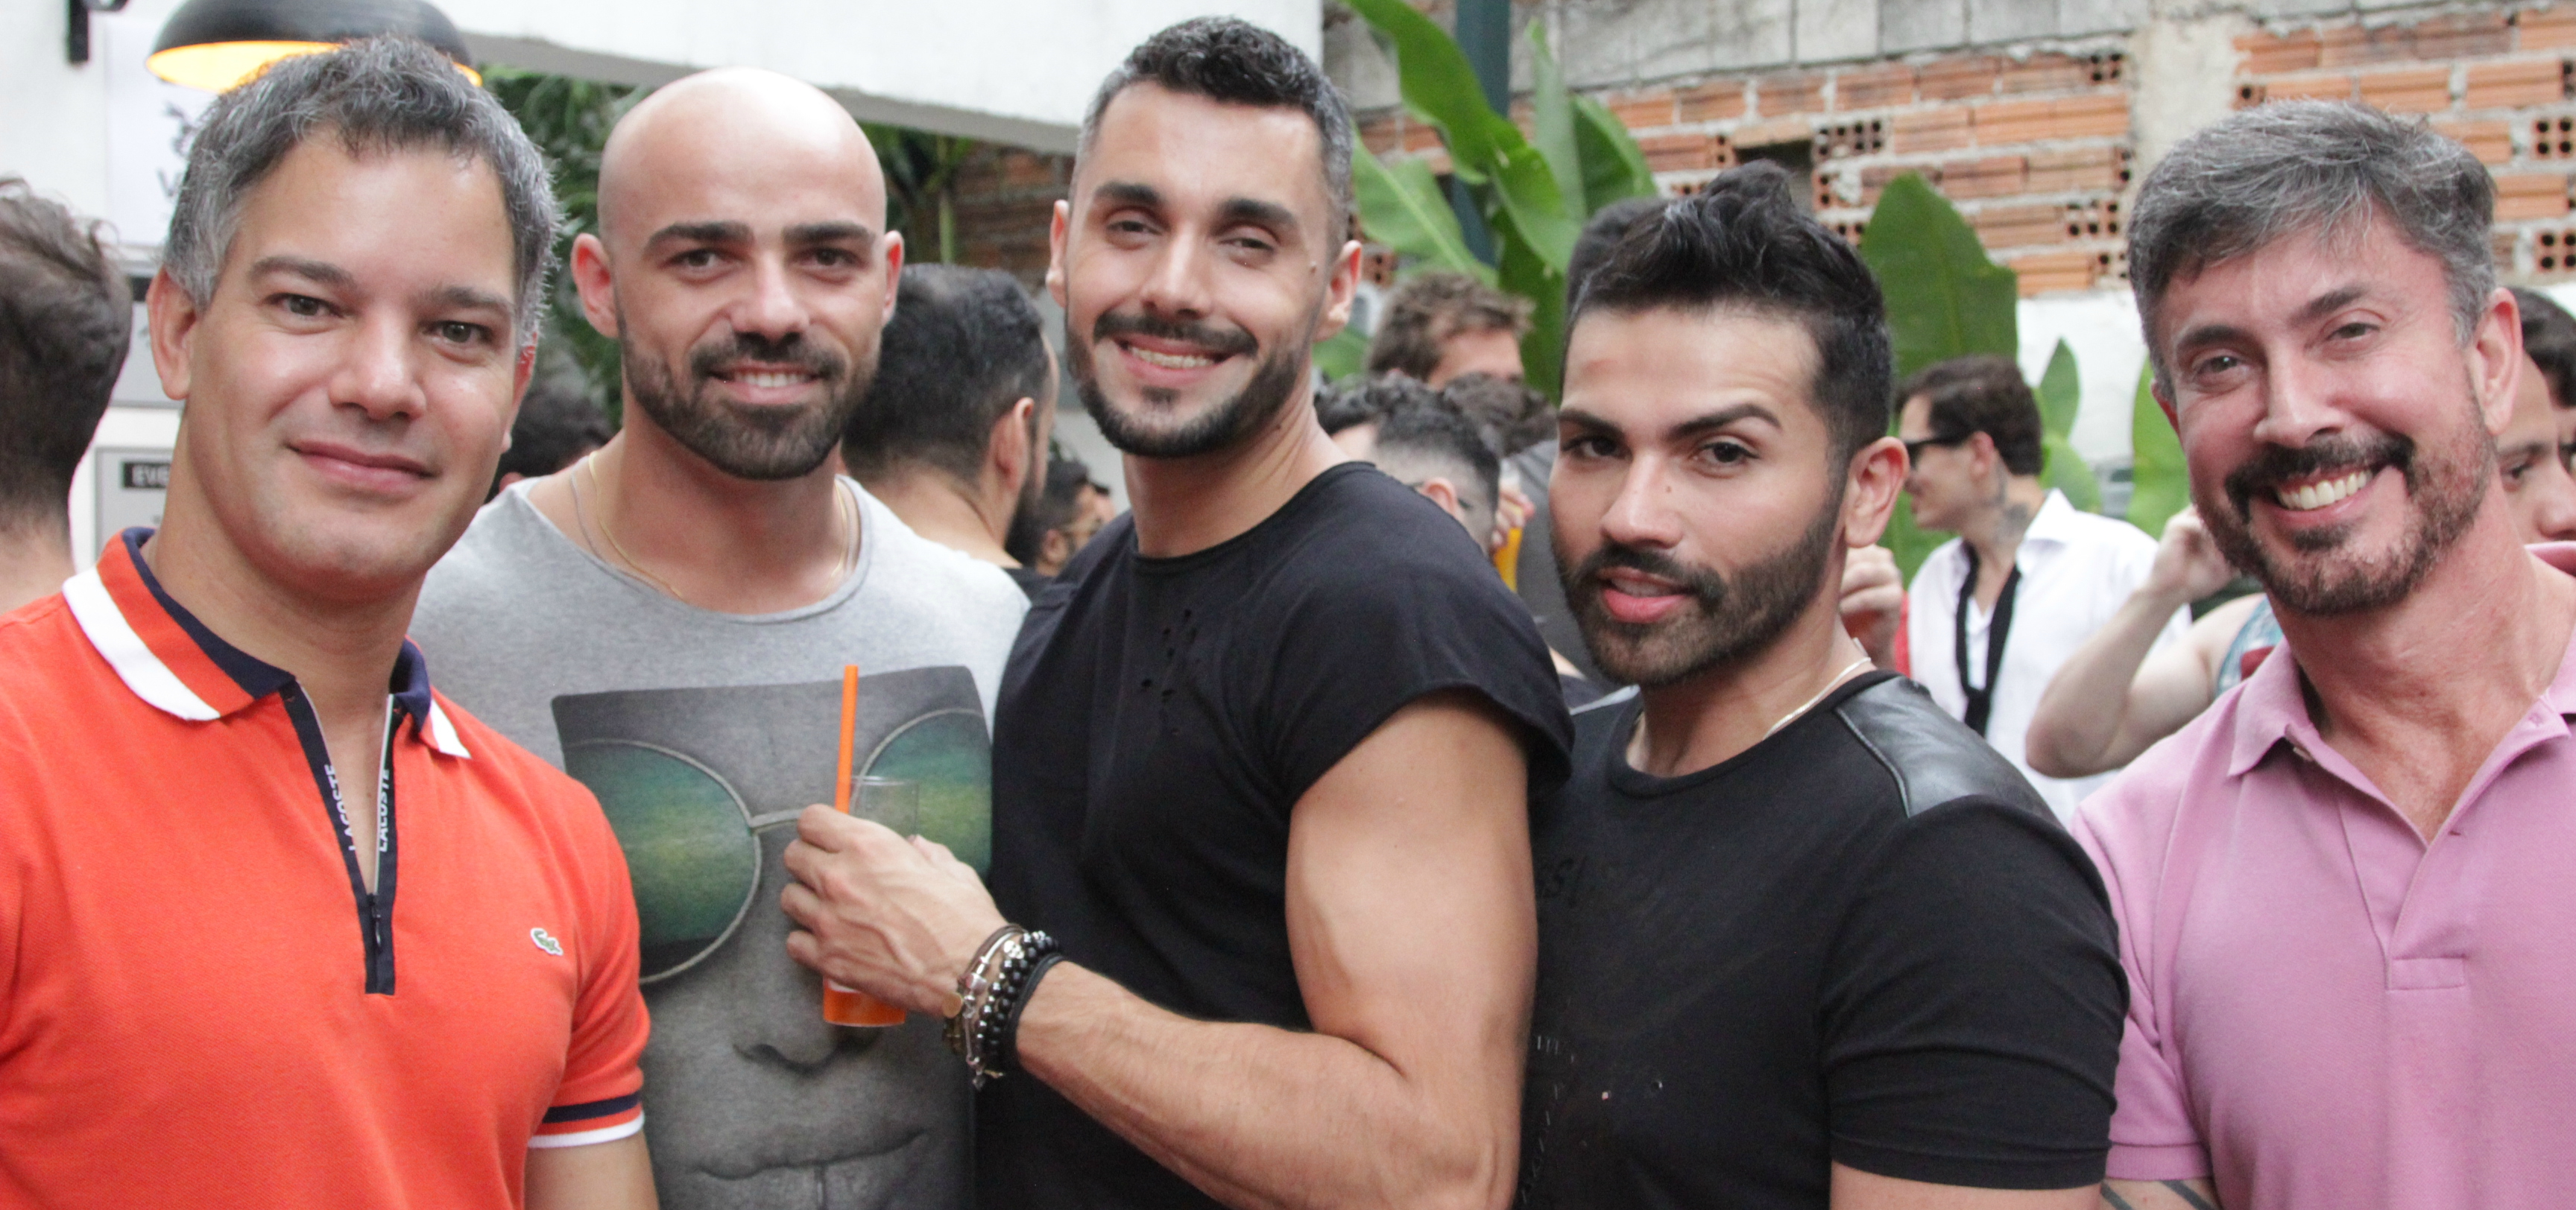 Gay Men Celebrate Social Networking App Hornet in São Paulo, Brazil